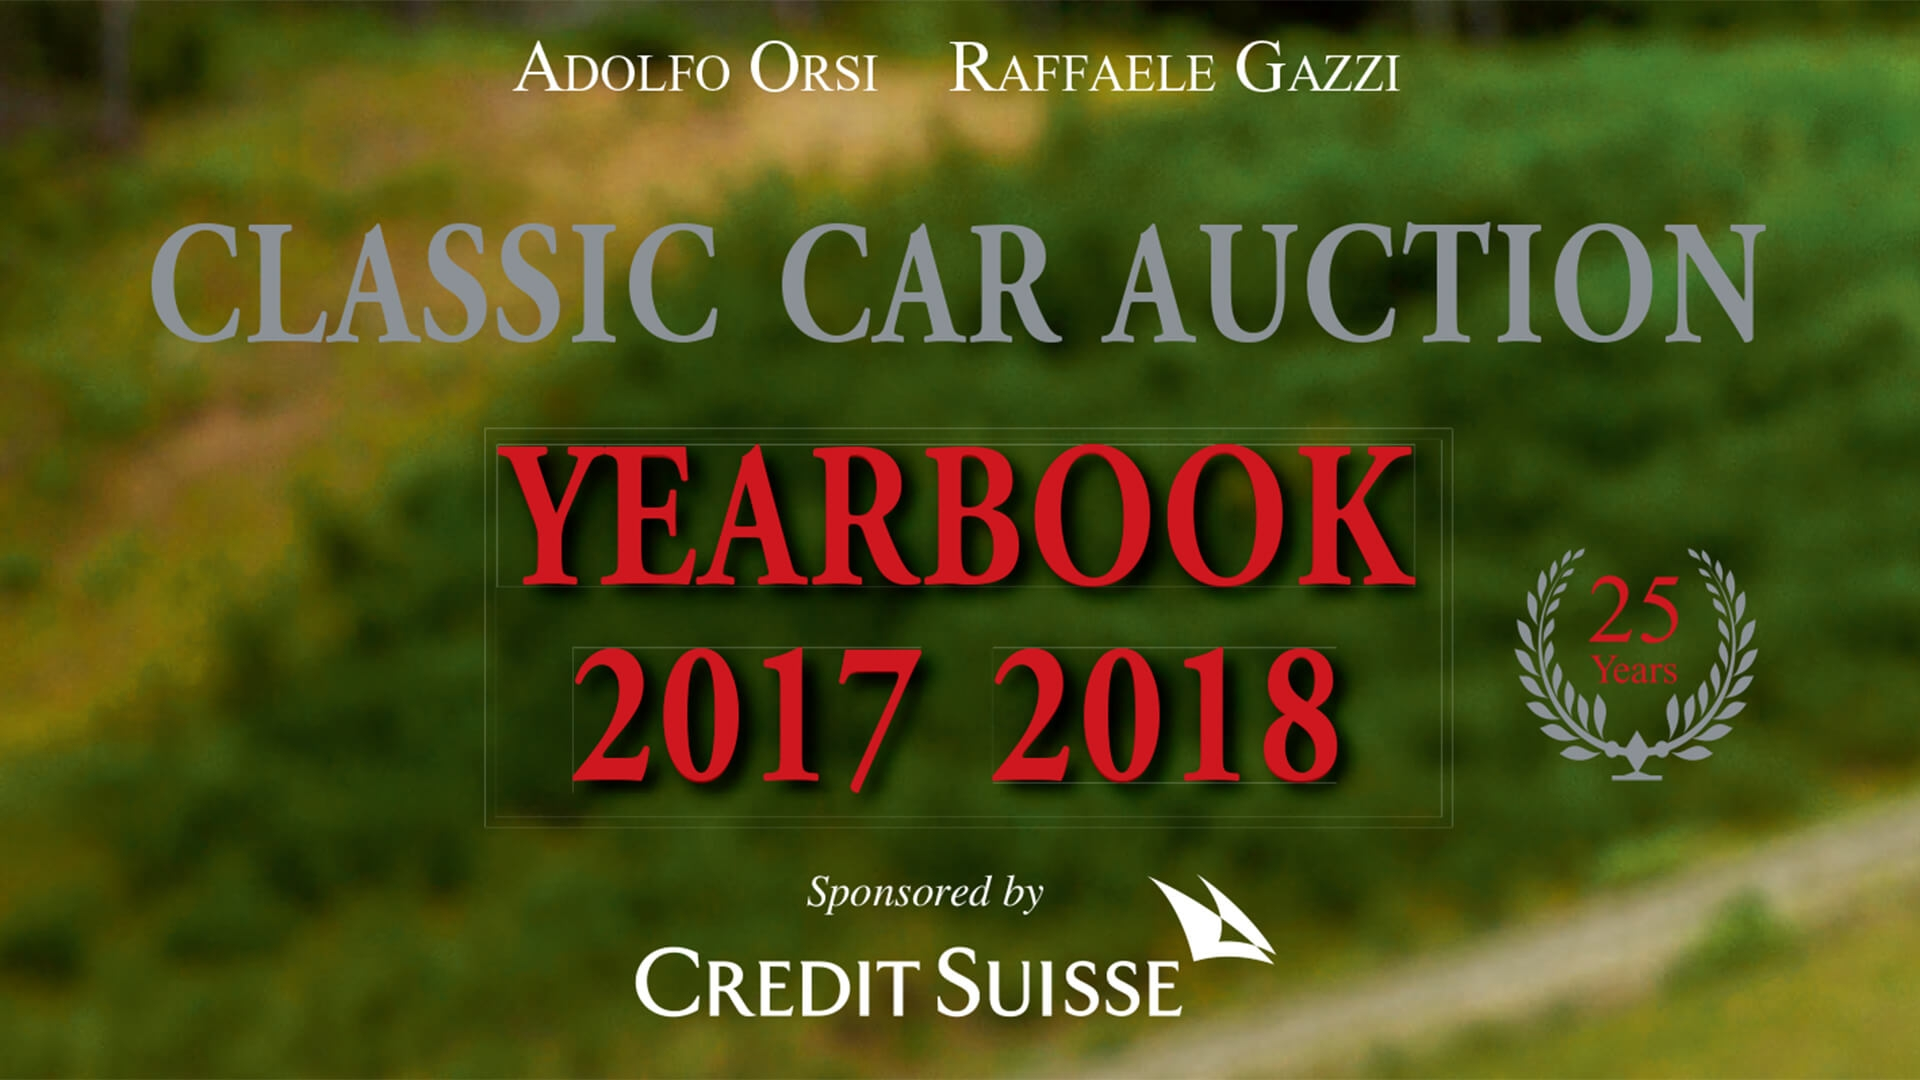 A year in retrospect: Classic Car Auction Yearbook 2017-2018